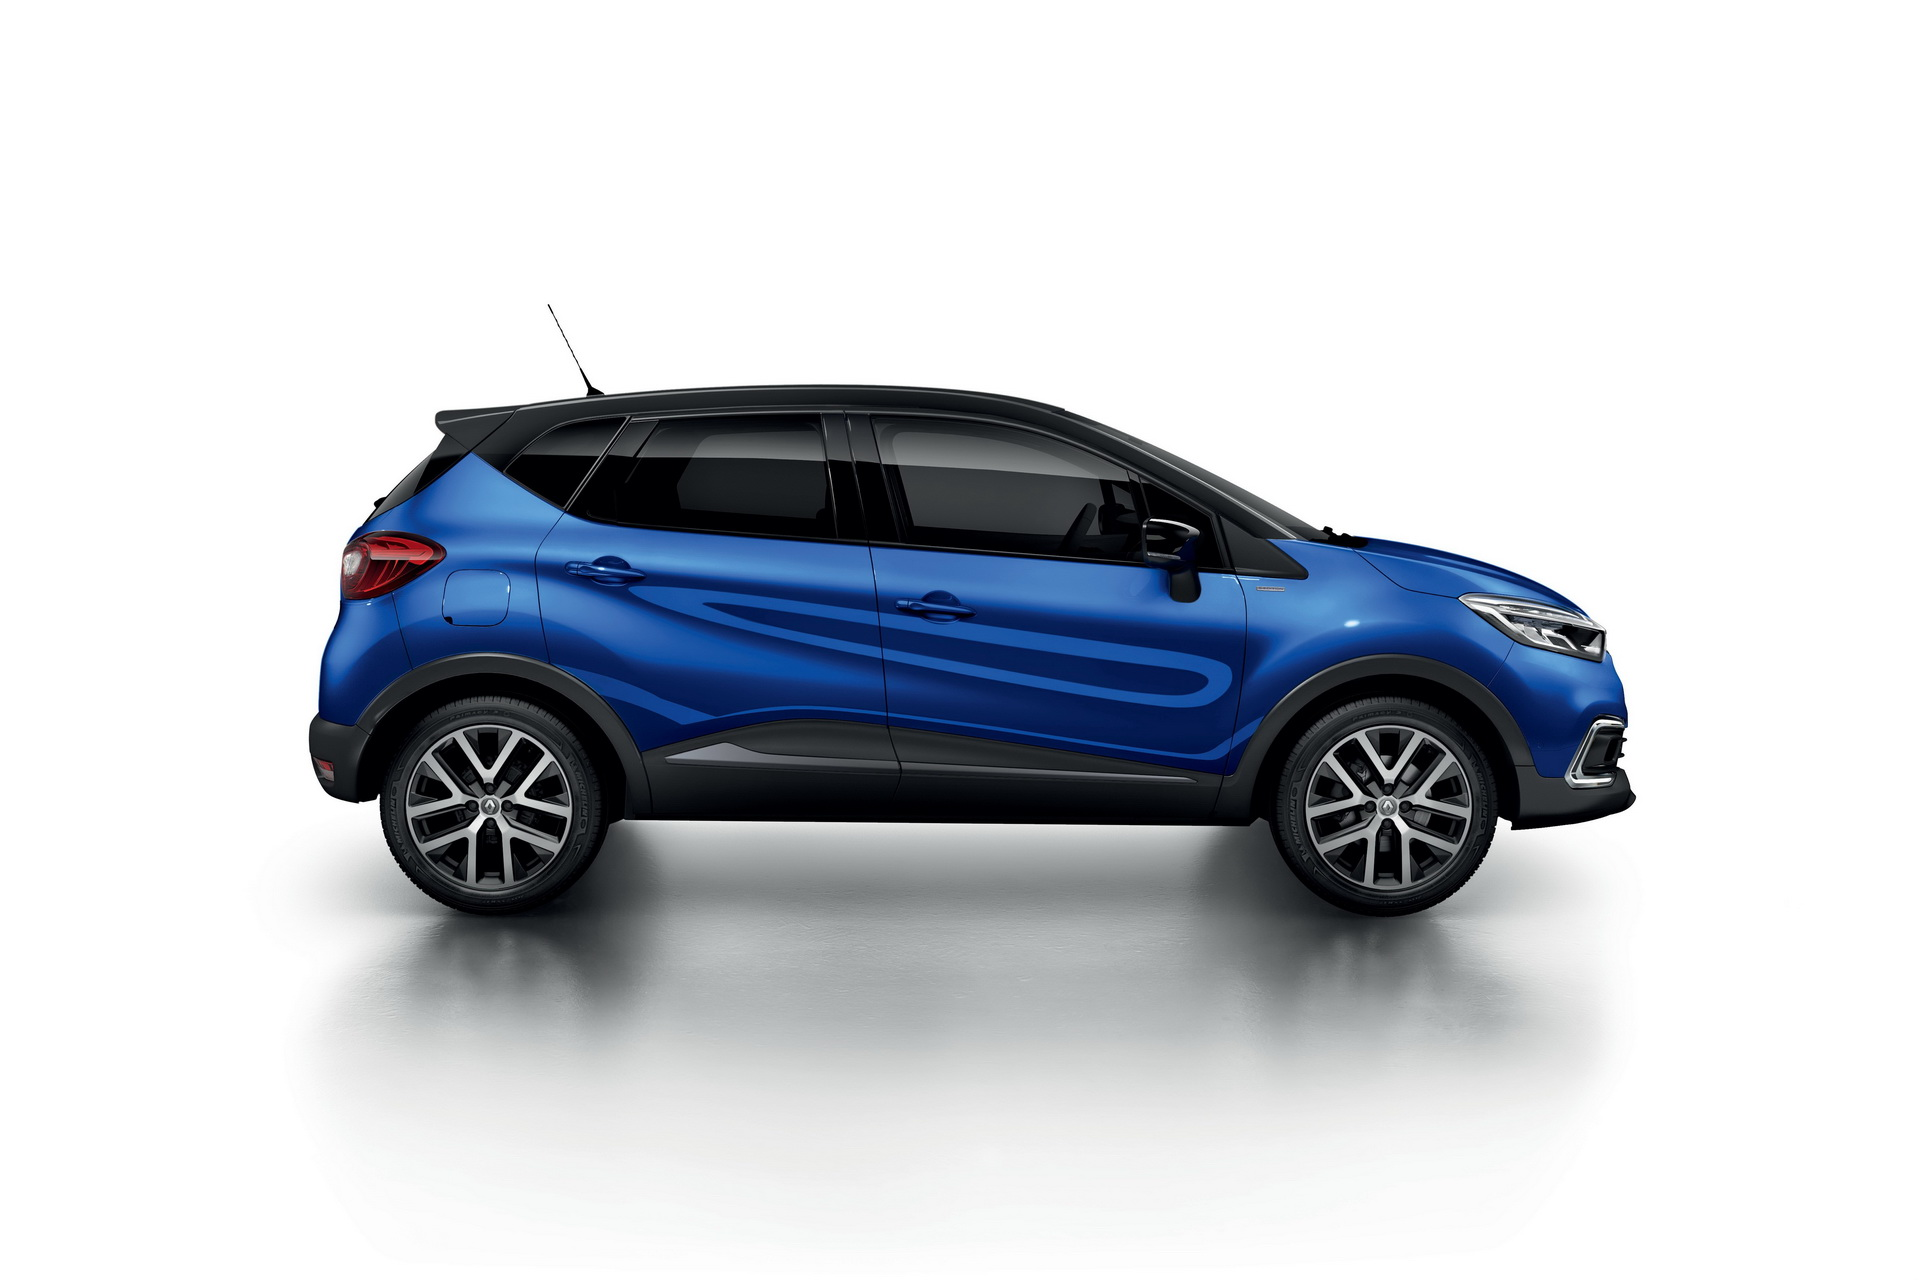 Renault_Captur_S-Edition_0001